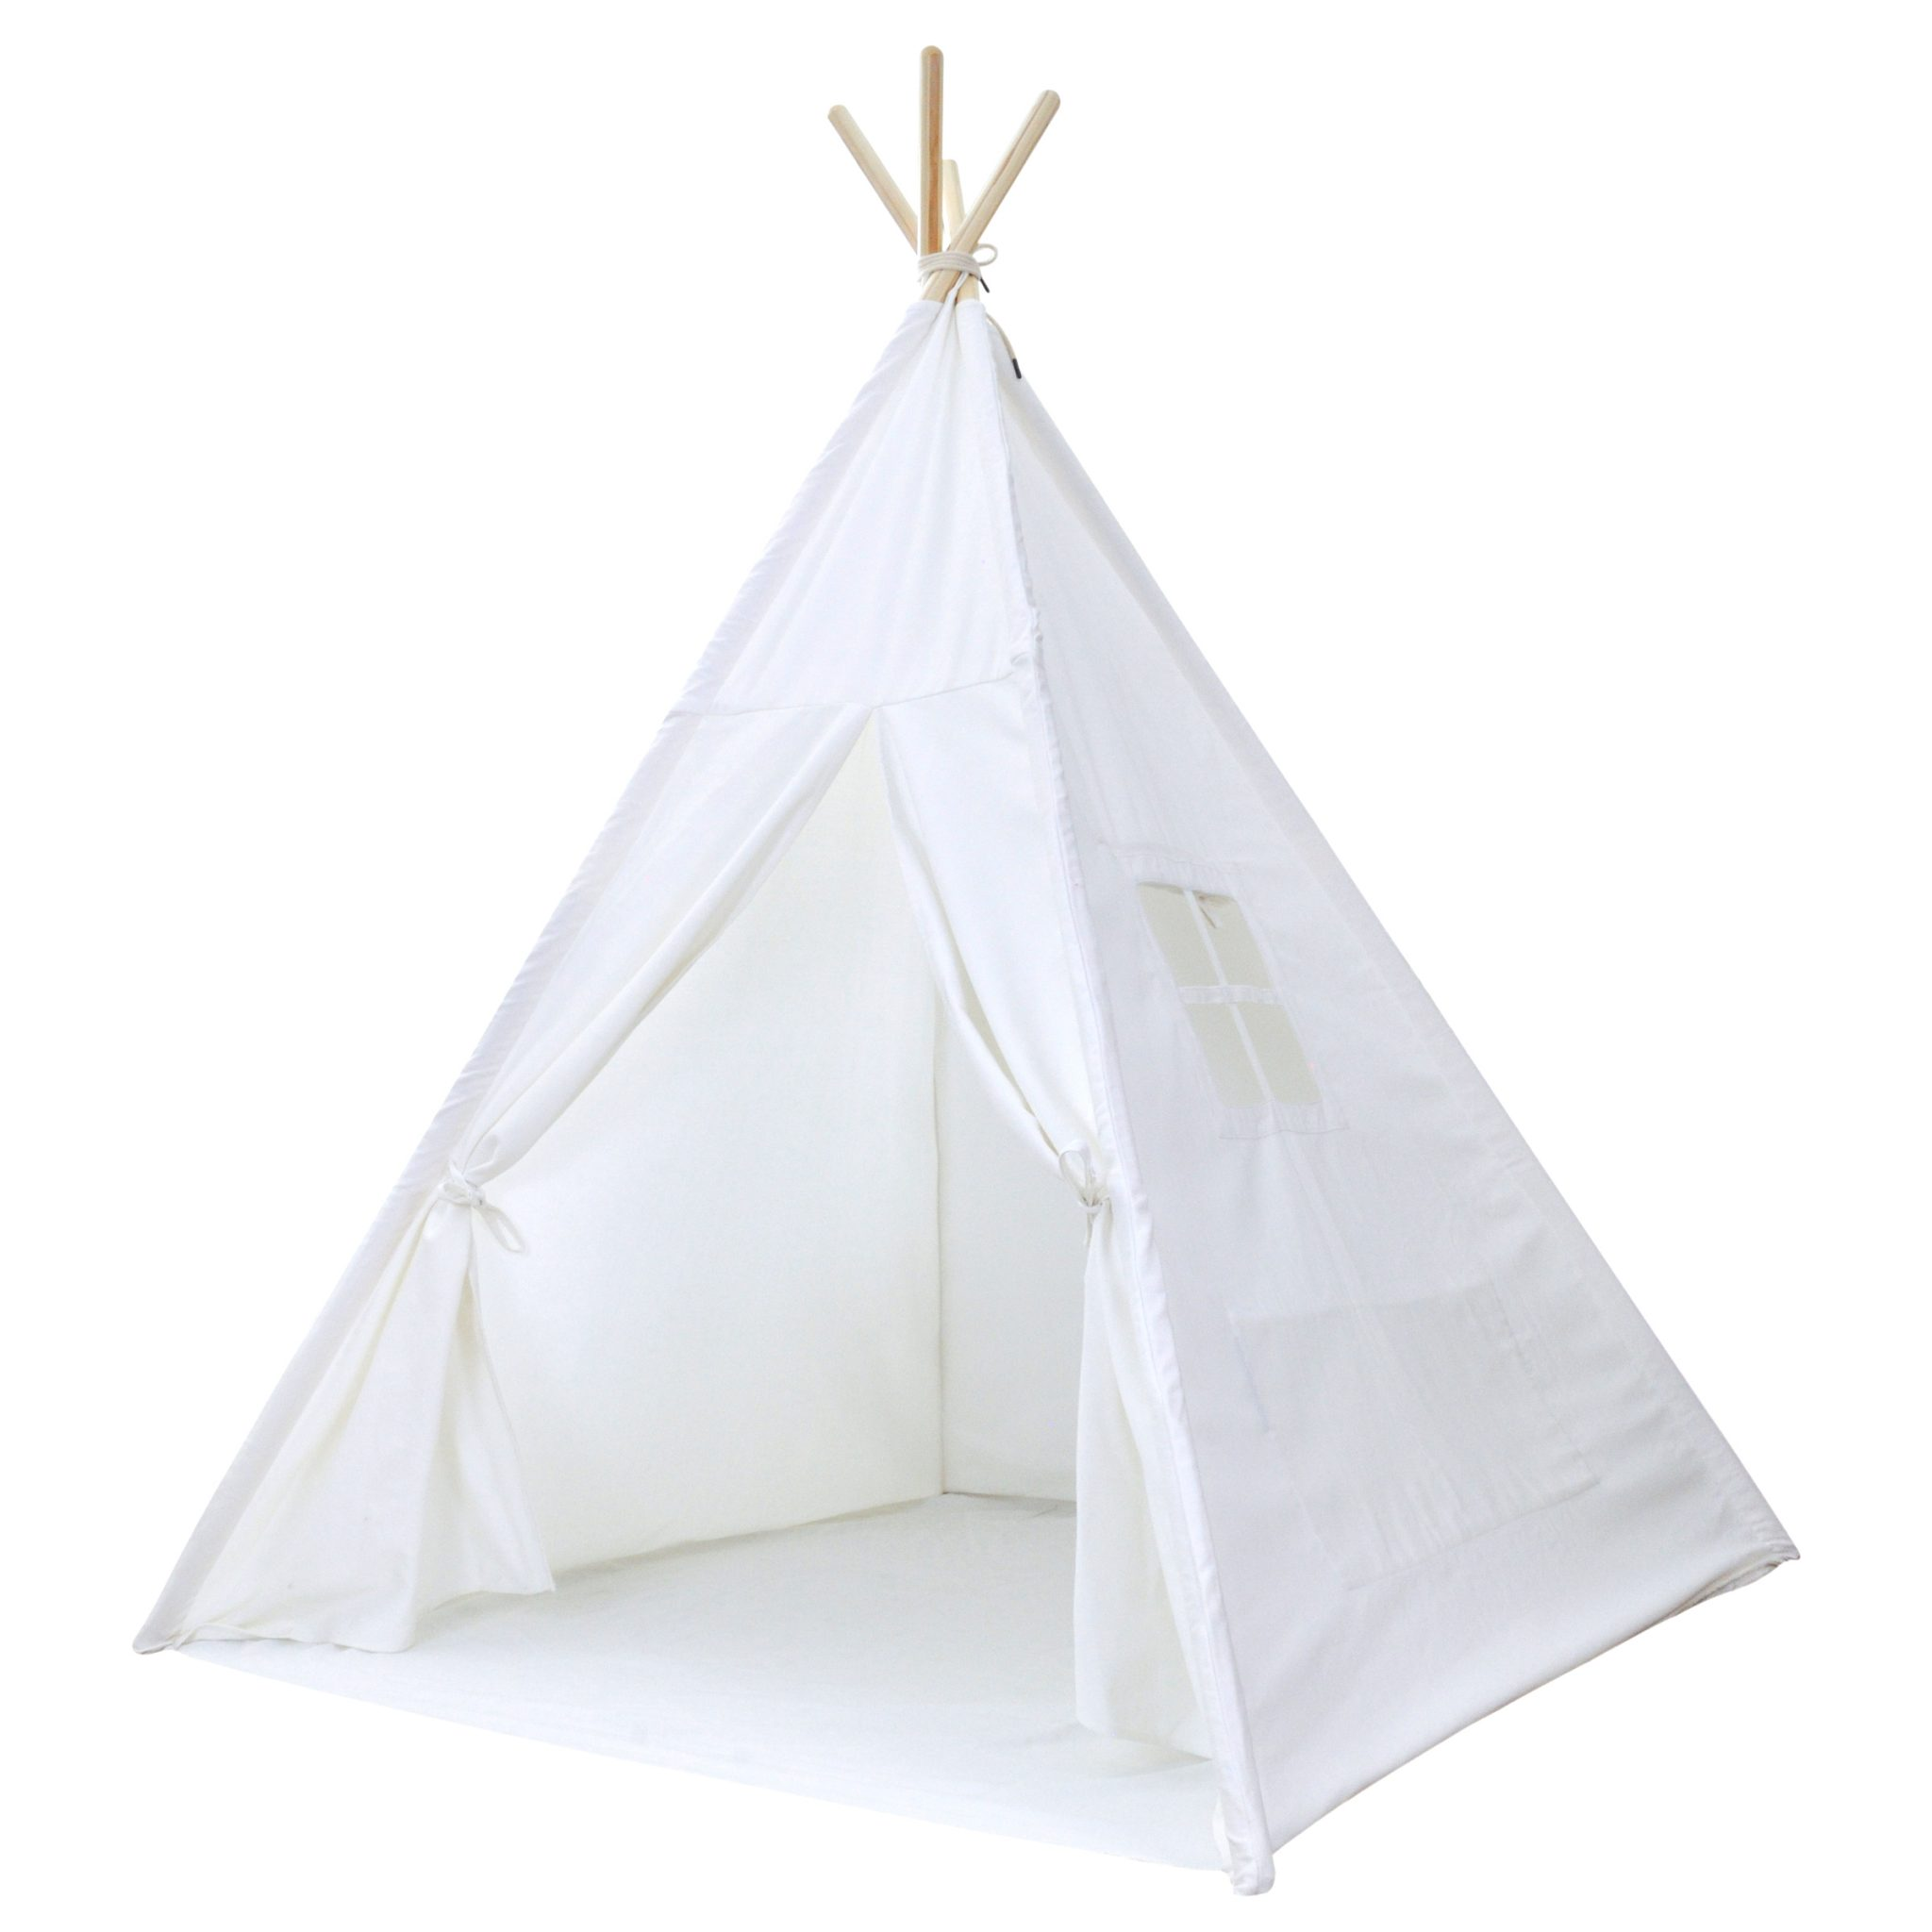 Home / Shop / Pretend Play / Portable Kids Canvas Teepee Tent with Carrying Case White Cotton Canvas  sc 1 st  A Mustard Seed Toys & Portable Kids Canvas Teepee Tent with Carrying Case White Cotton ...